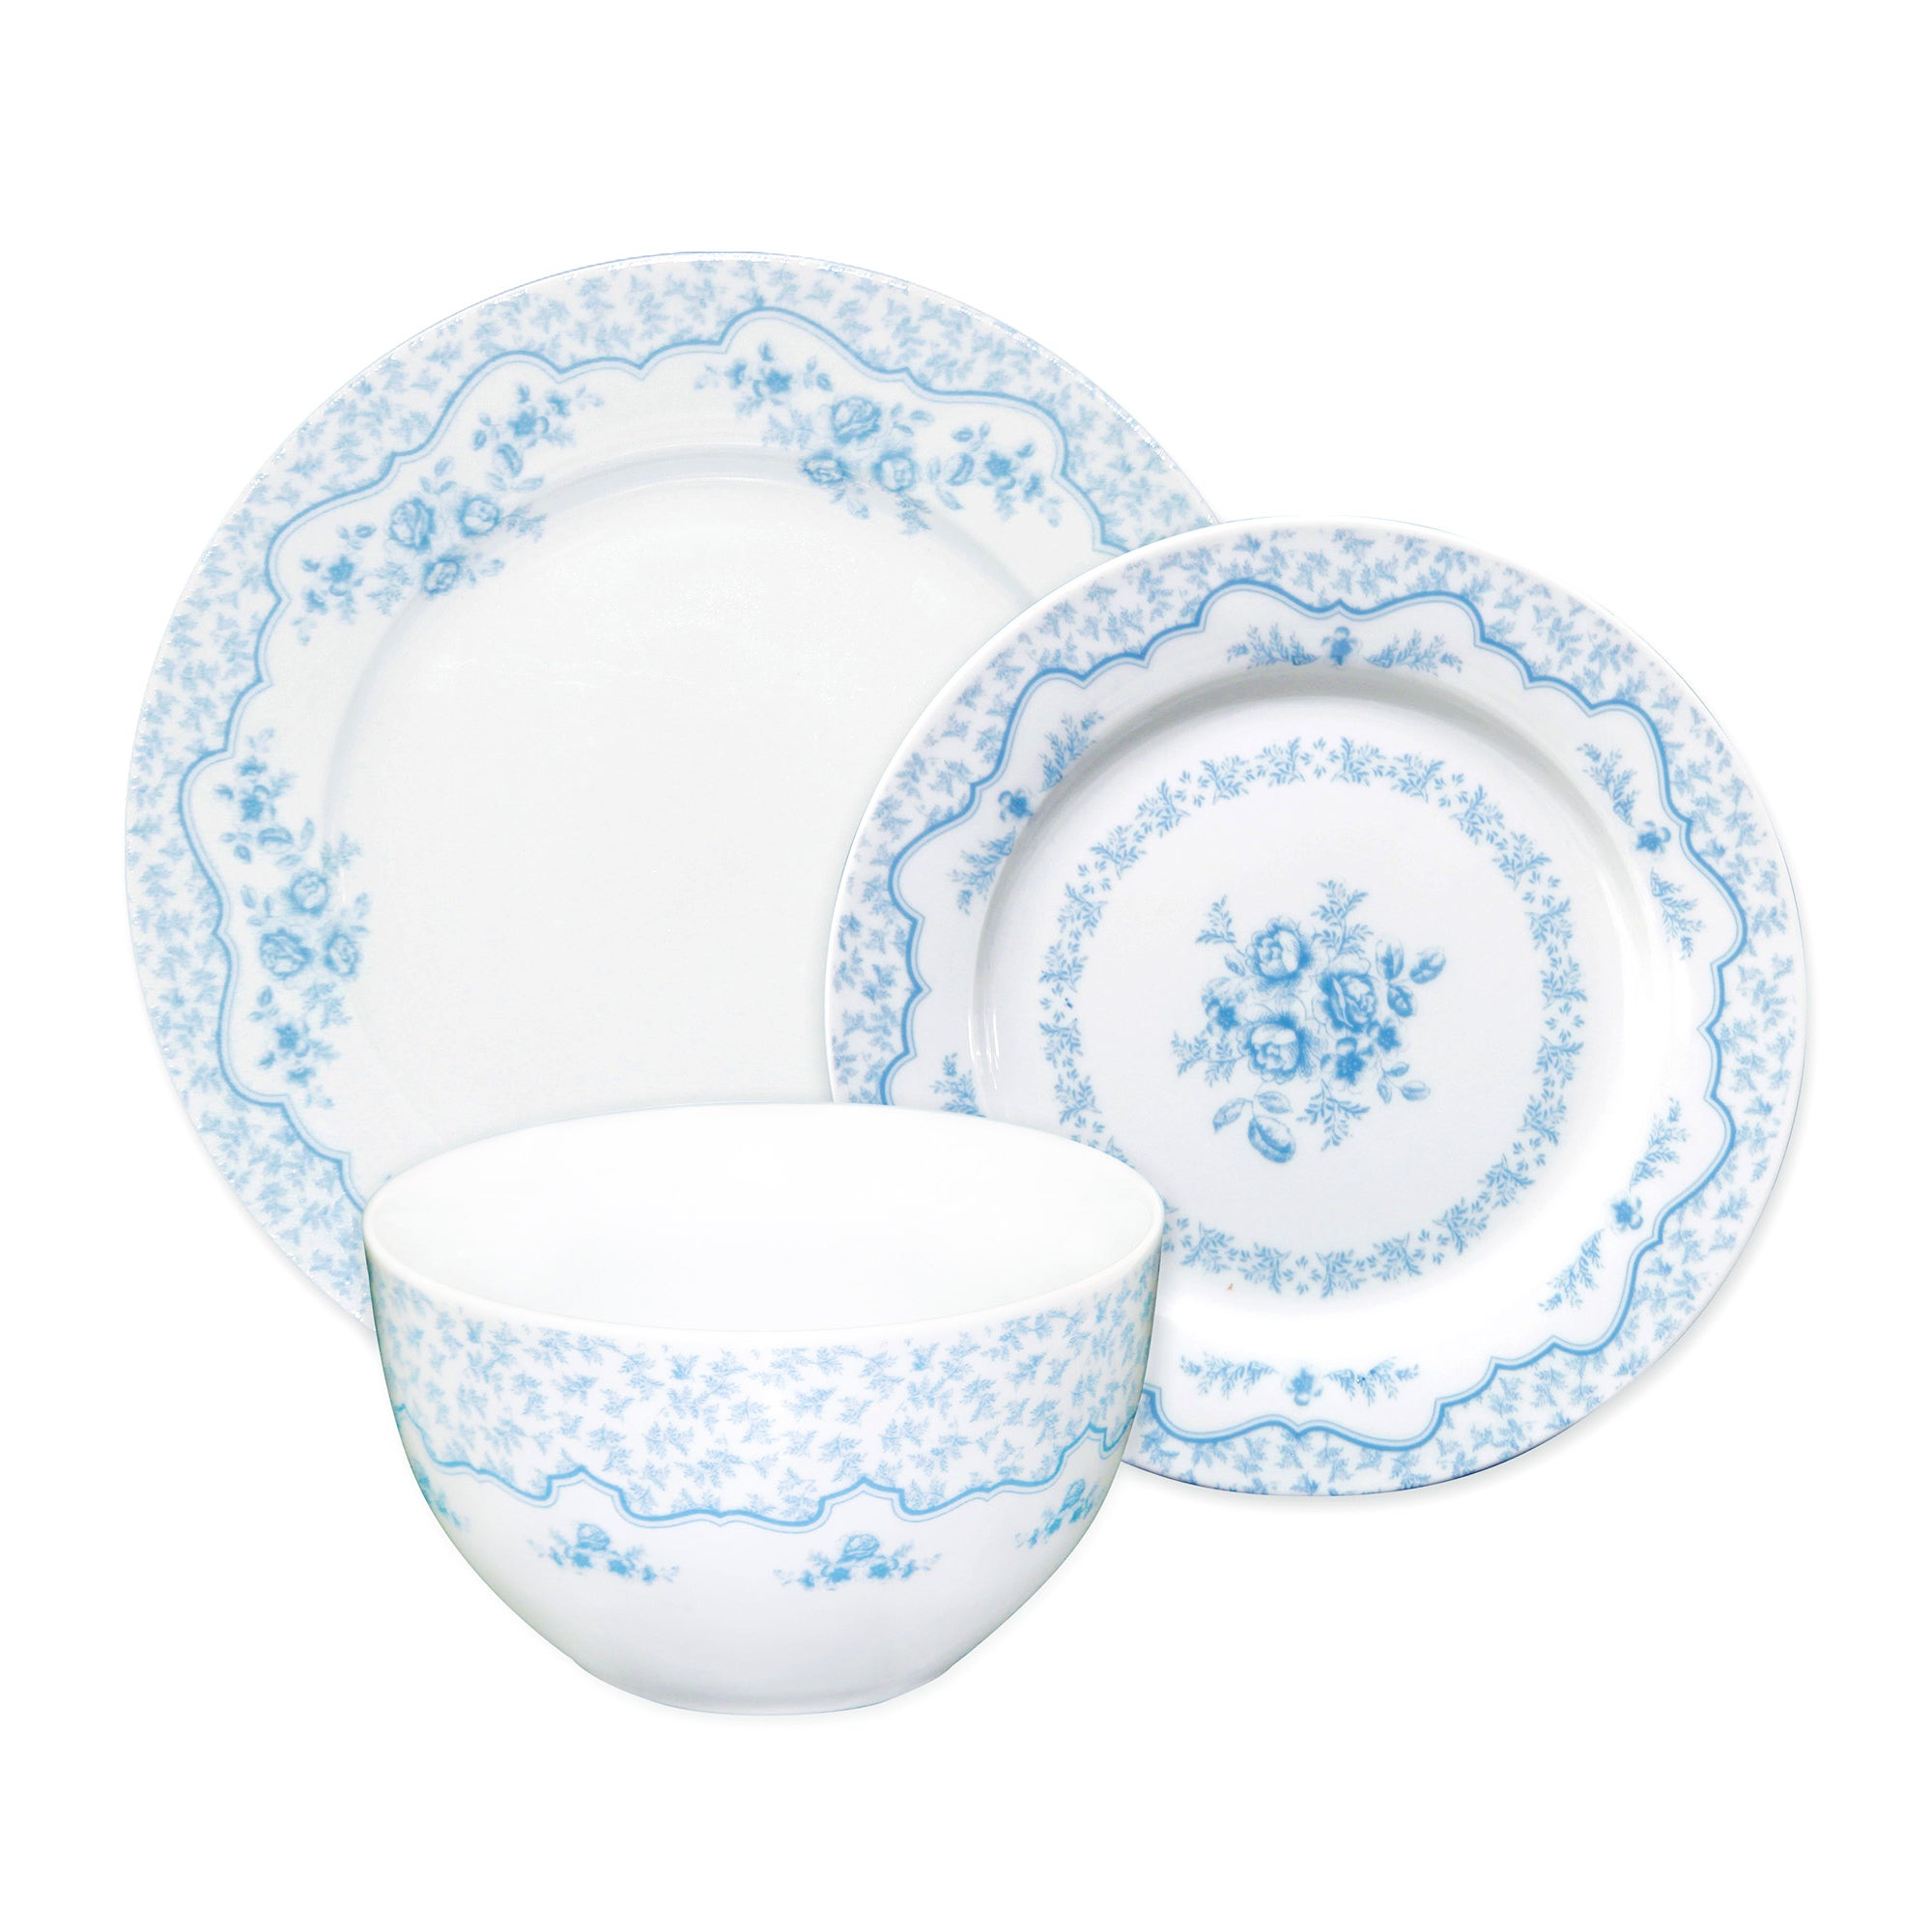 Chateau Blue 12 Piece Dinner Set